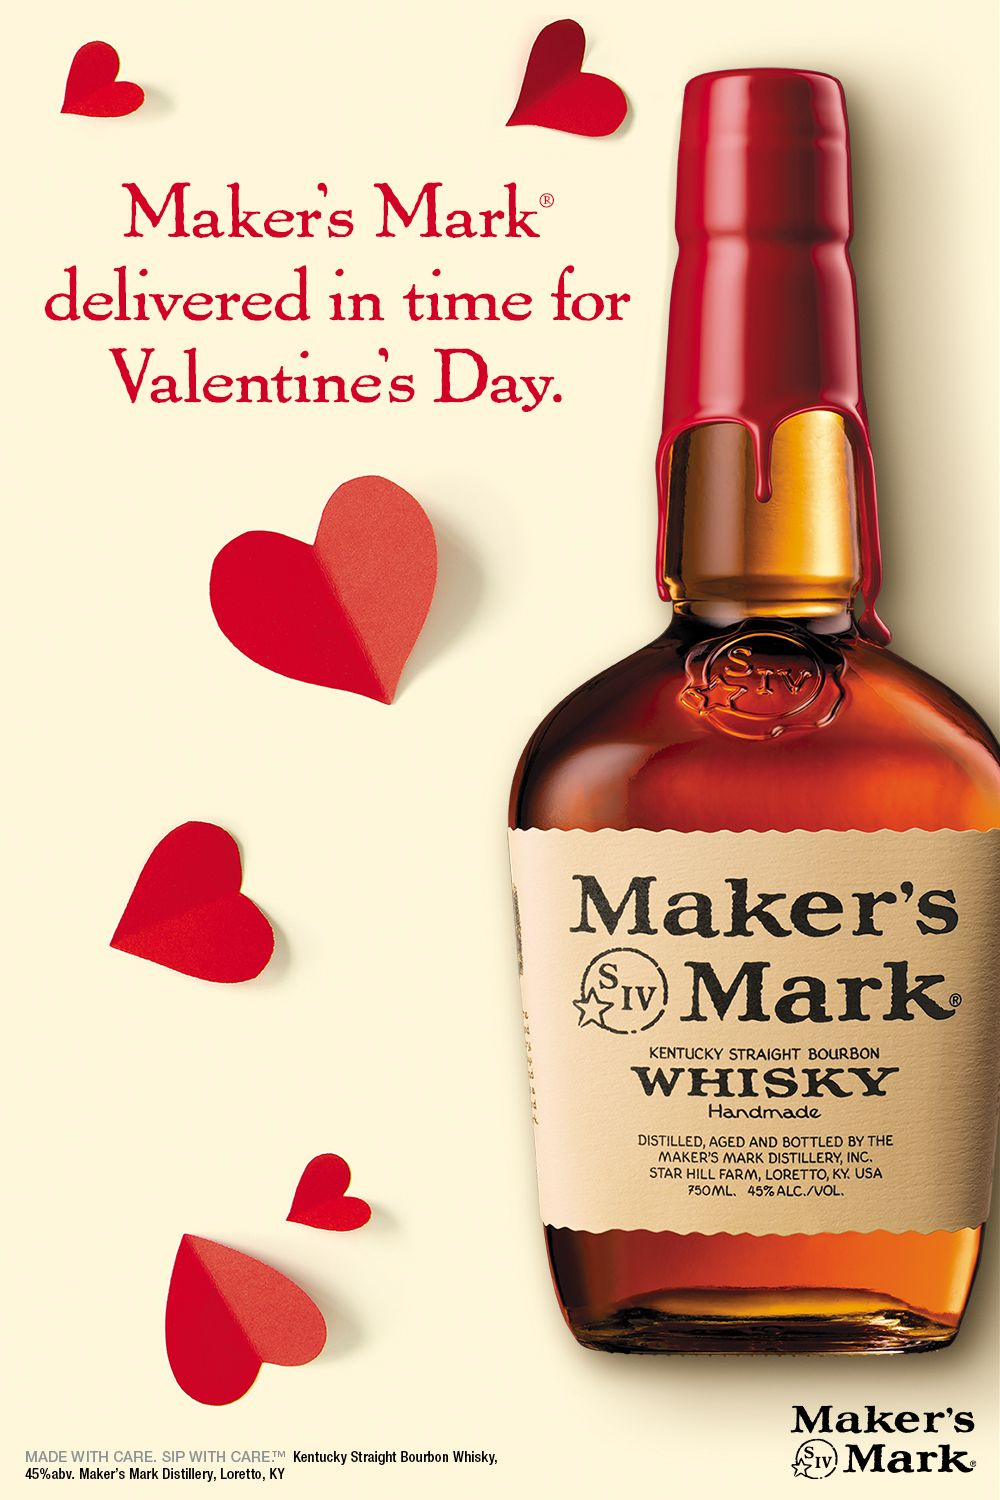 Need a lastminute Valentine's Day gift? Order a bottle of